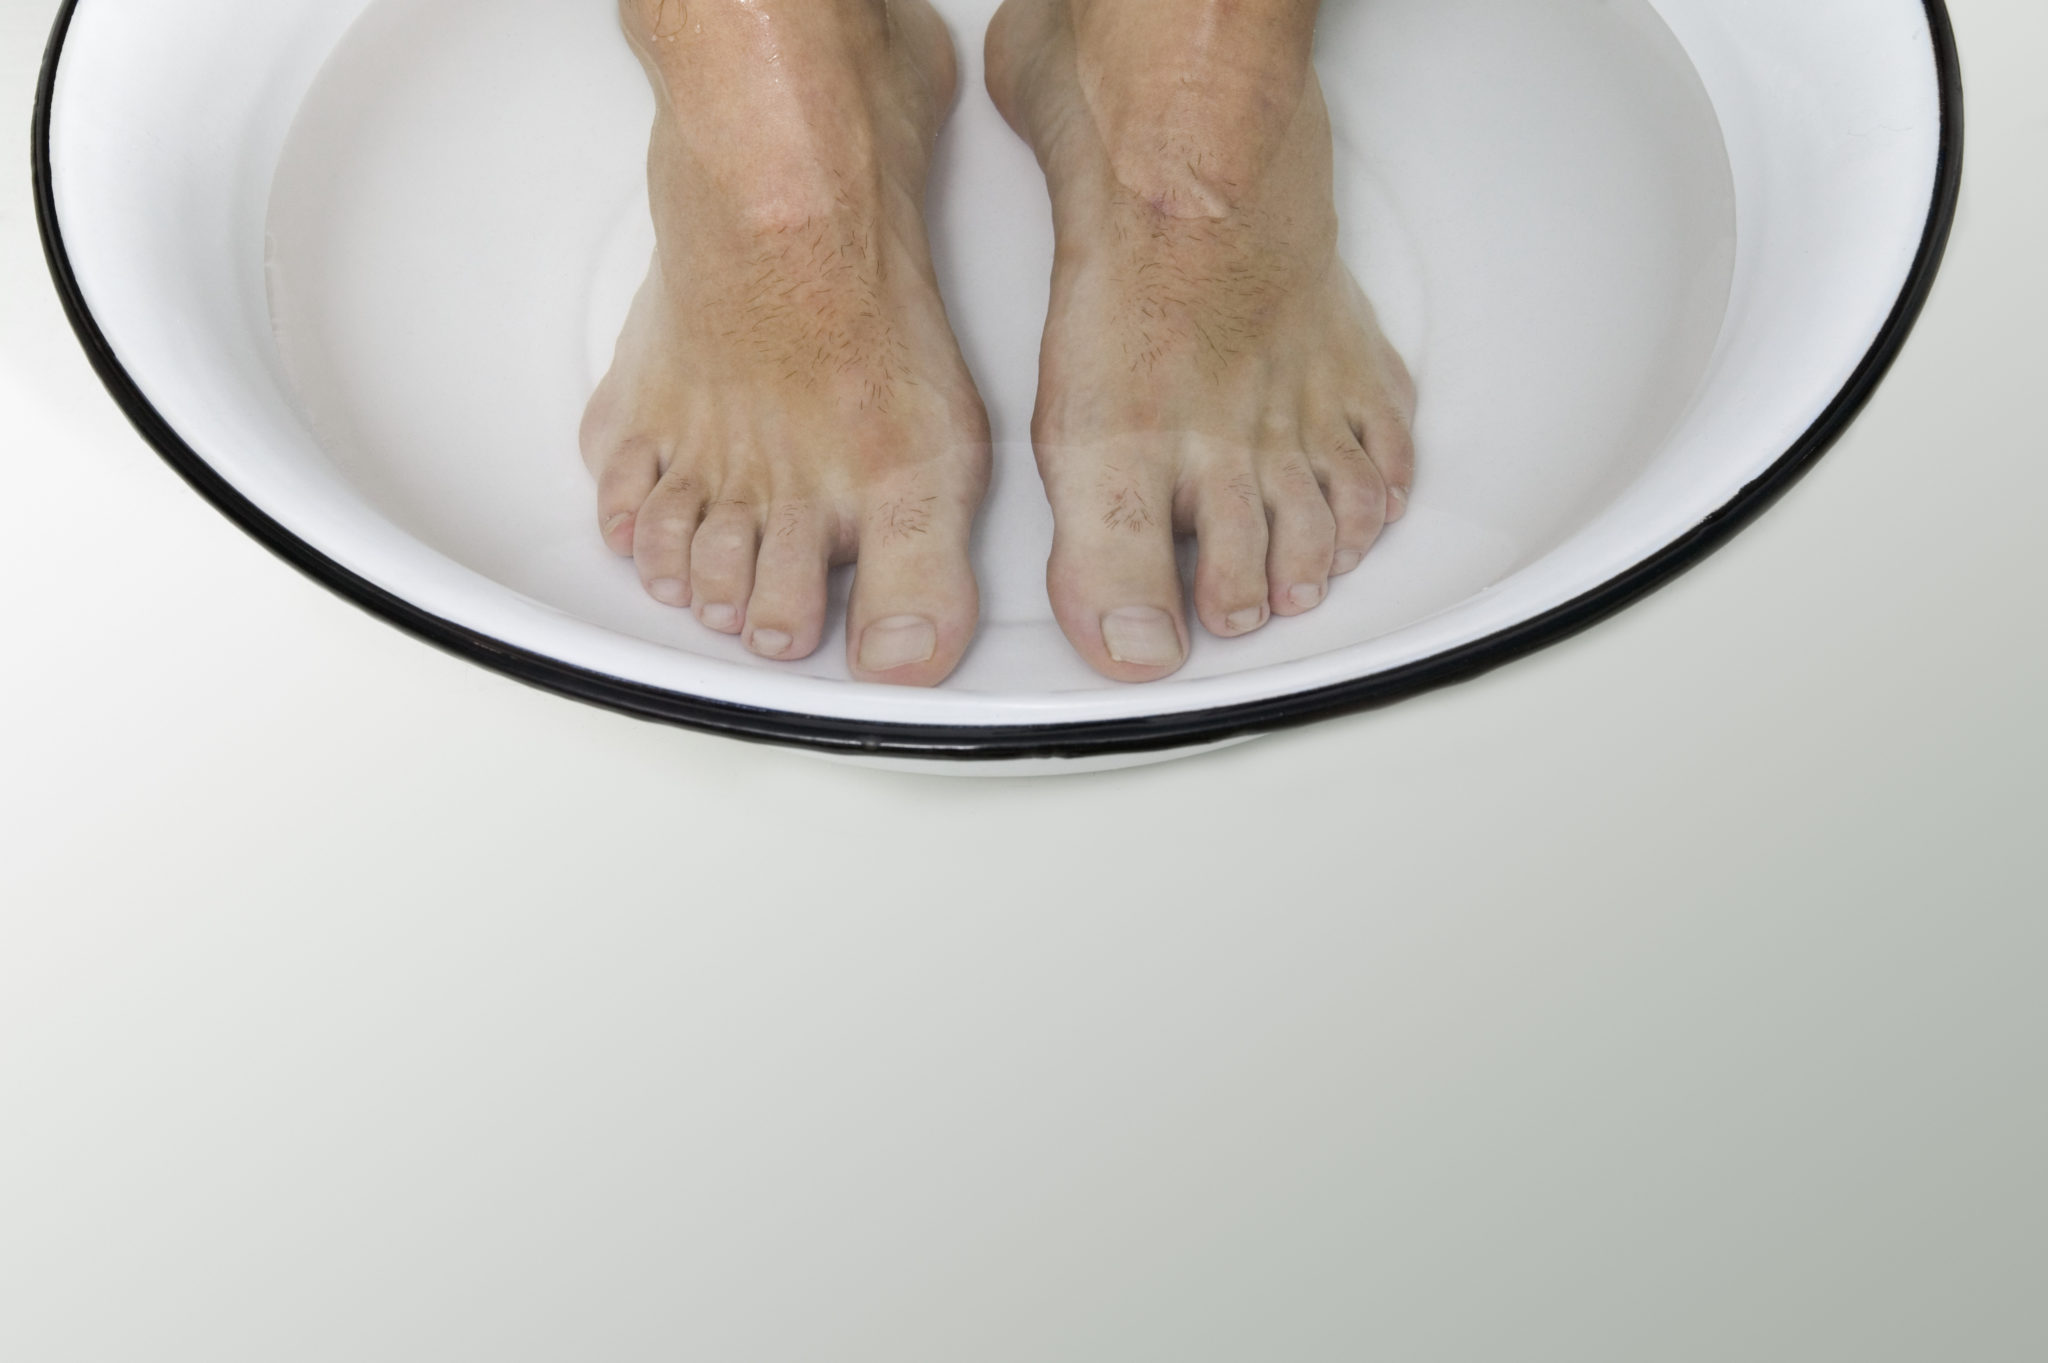 High angle view of a man's feet in a bowl of water